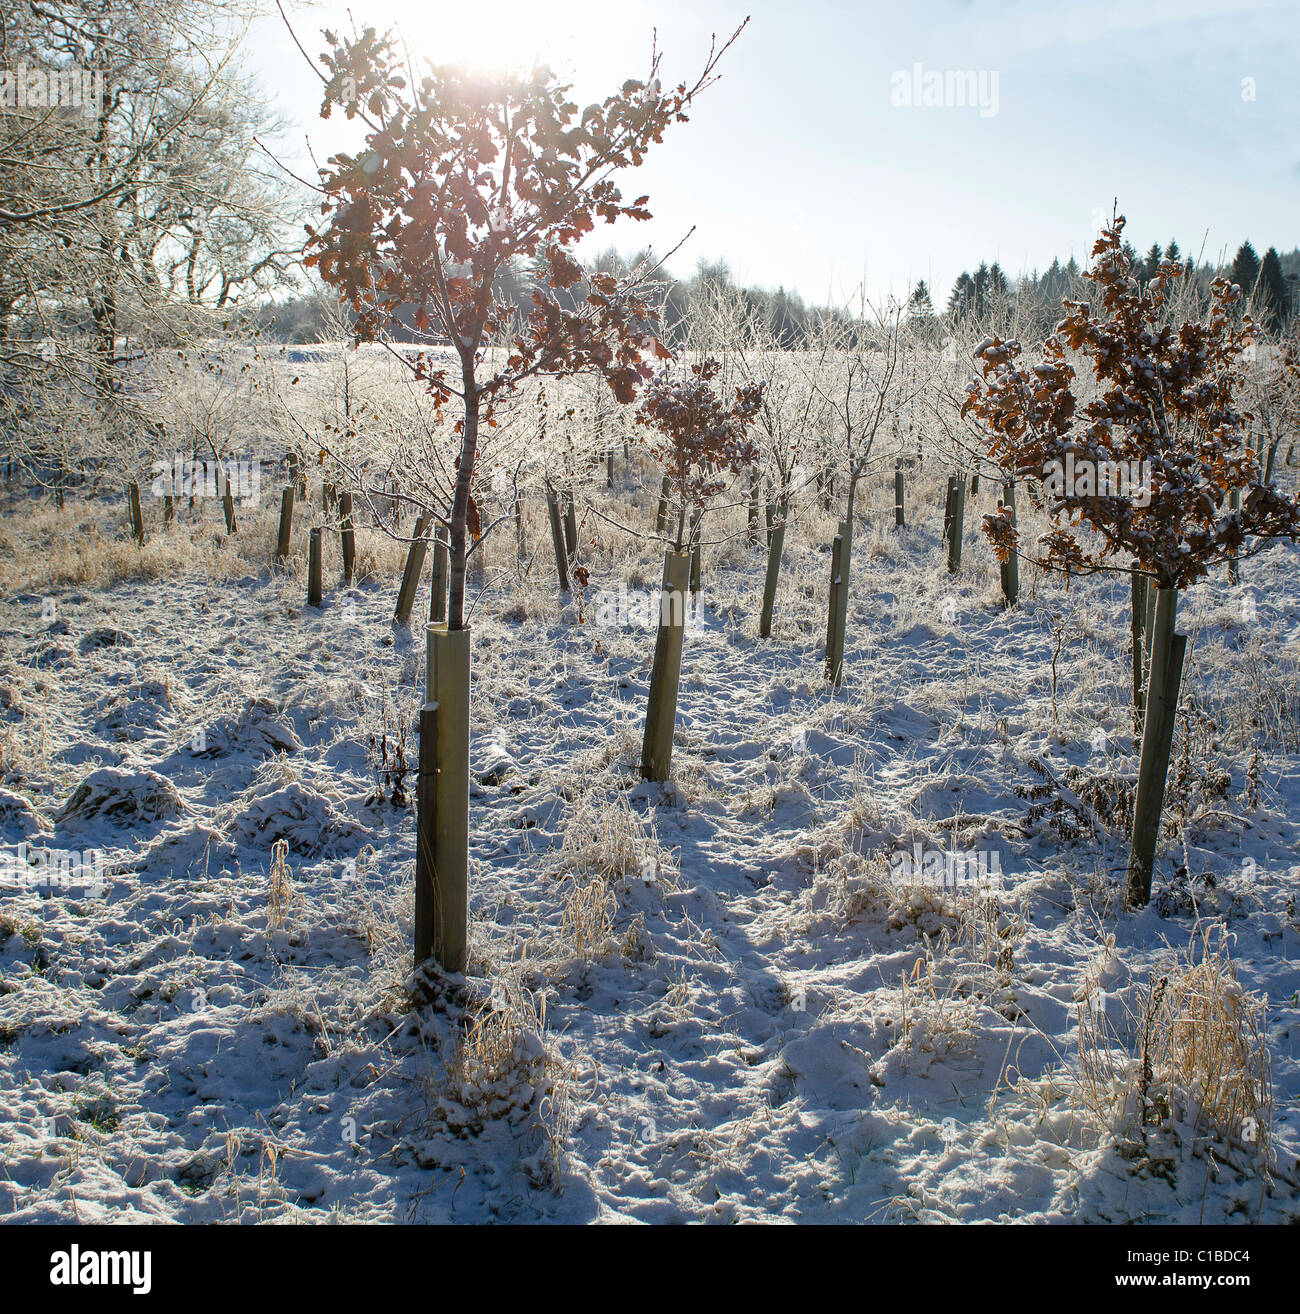 Small plantation of young Oak saplings at corner of field in winter fresh crisp winter conditions - Stock Image